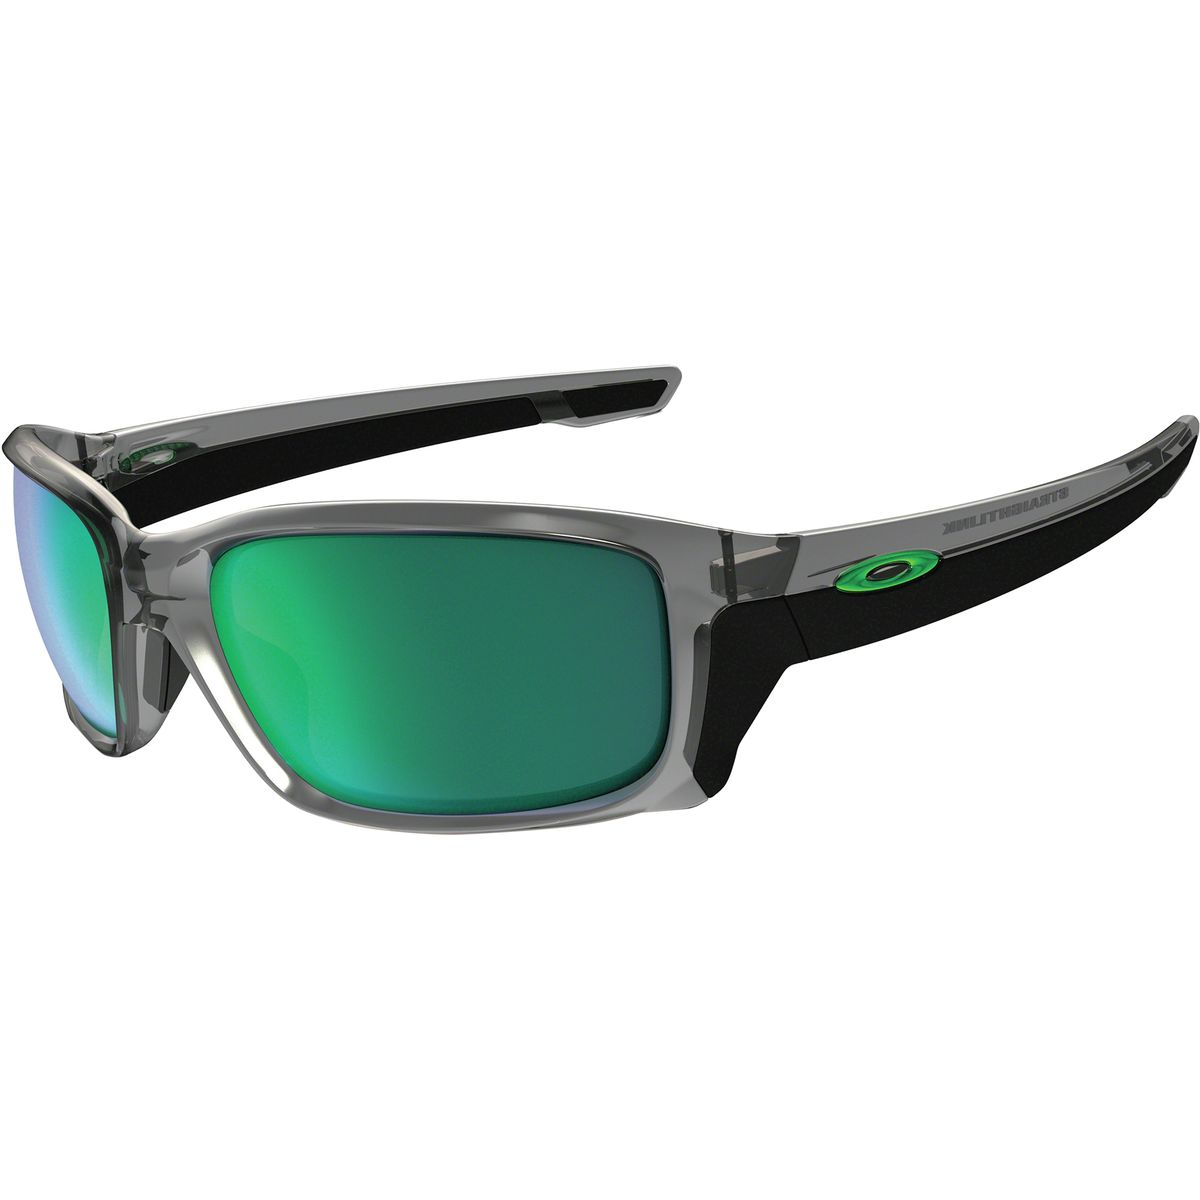 0a6d13776561 Compare Oakley Sunglasses STRAIGHTLINK 713589409071 prices and Buy online -  www.semadatacoop.org